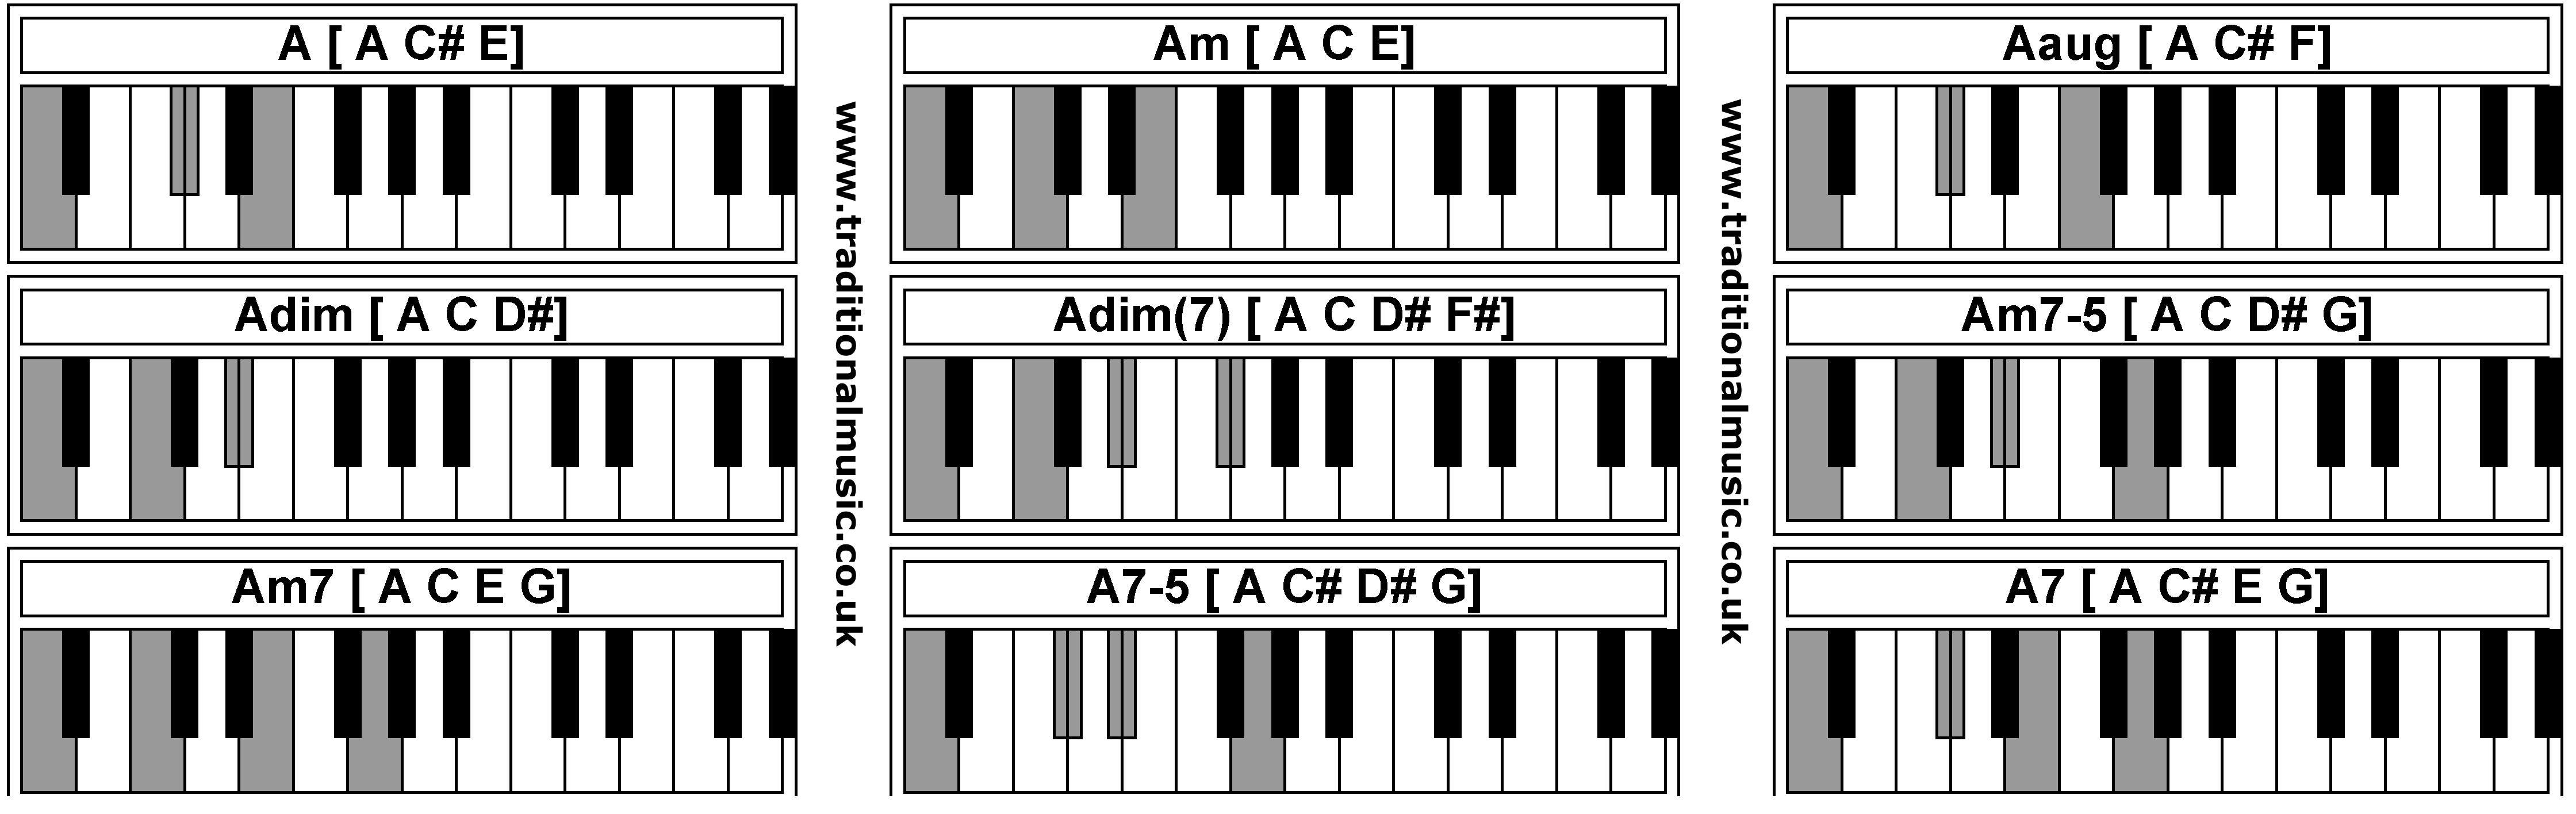 Am7 chord piano images am7 chord piano am7 a7 5 a7 piano chords am7 a7 5 a7 piano chords source abuse report hexwebz Images